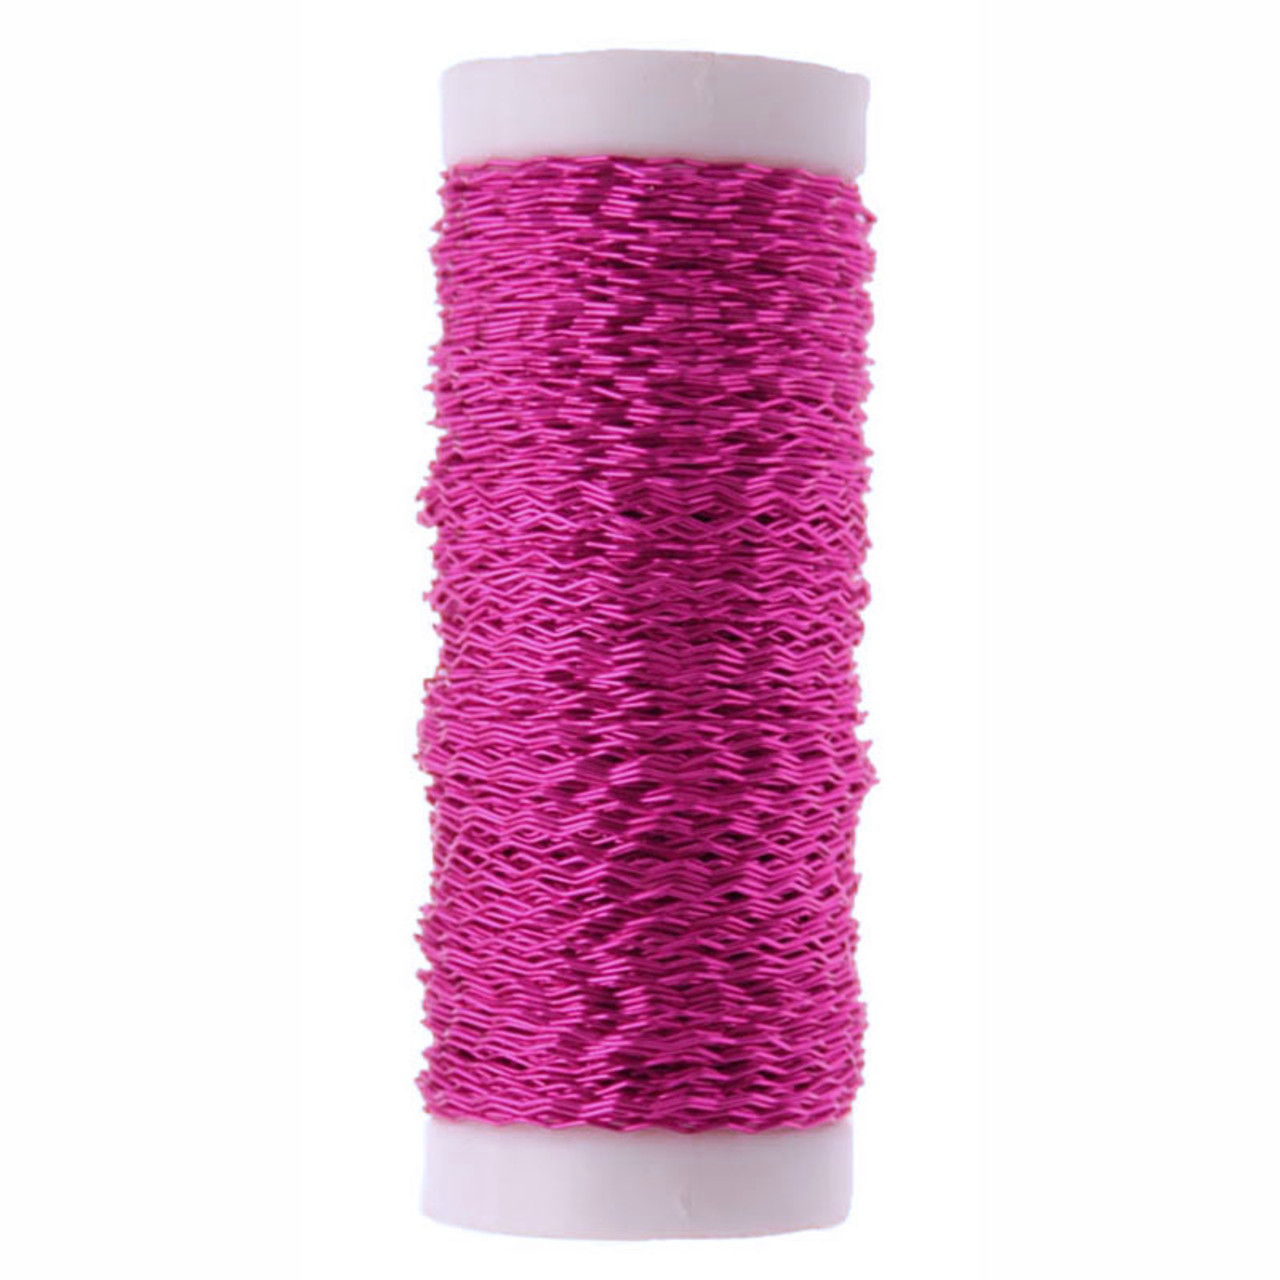 Bullion Wire 25g reel crinkly floristry Cerise Pink